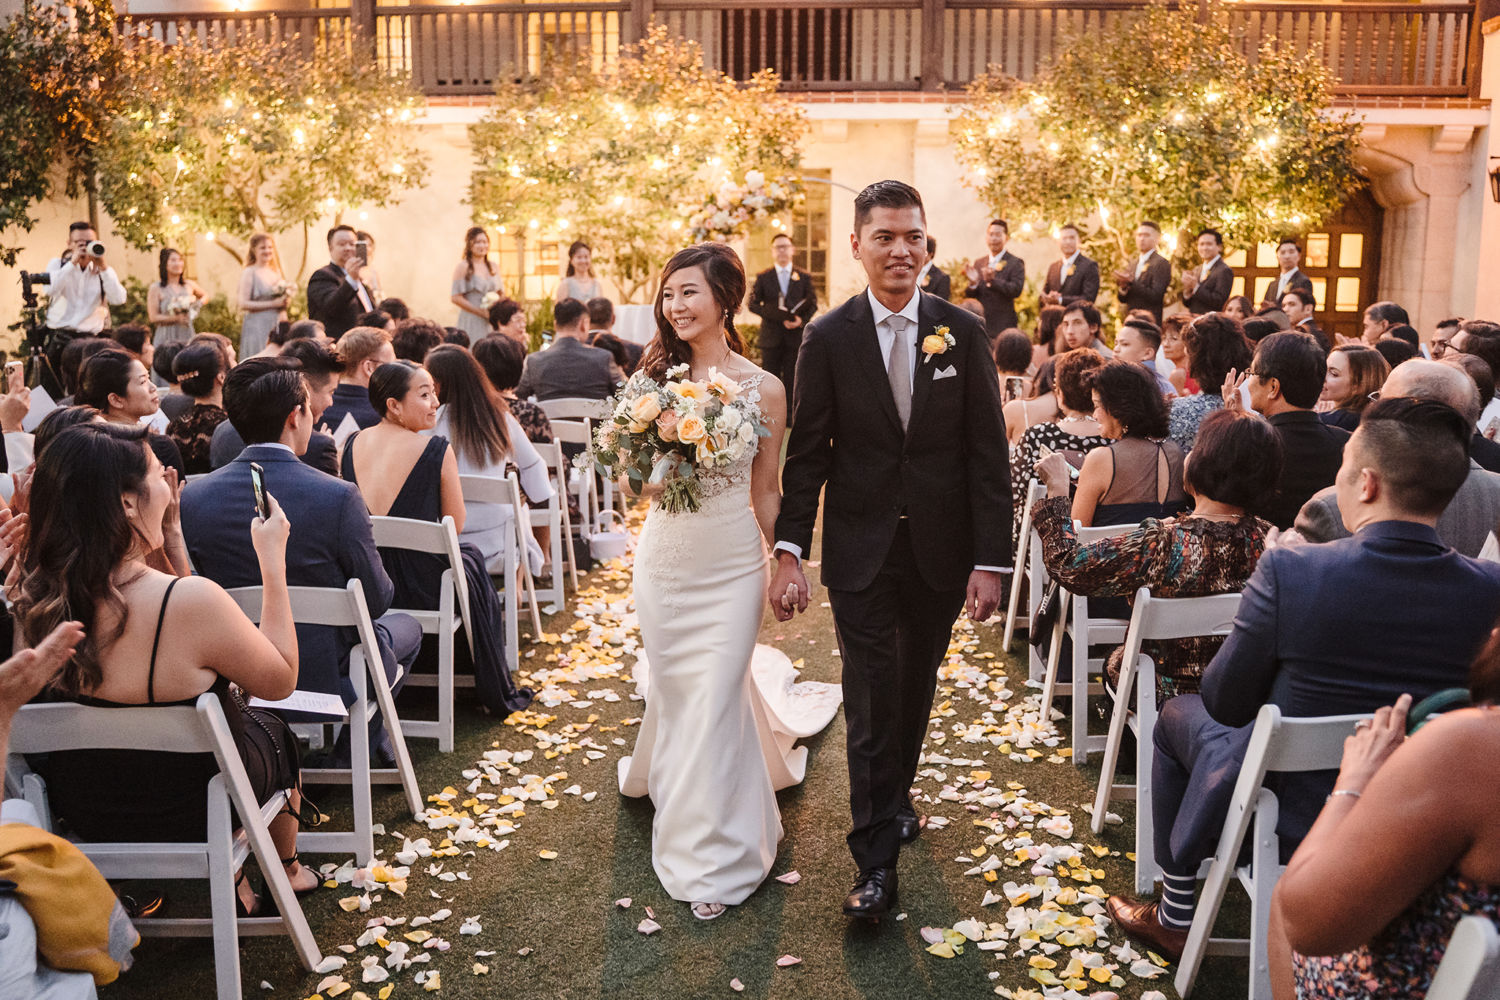 Bowers Museum Santa Ana Wedding Ceremony 4